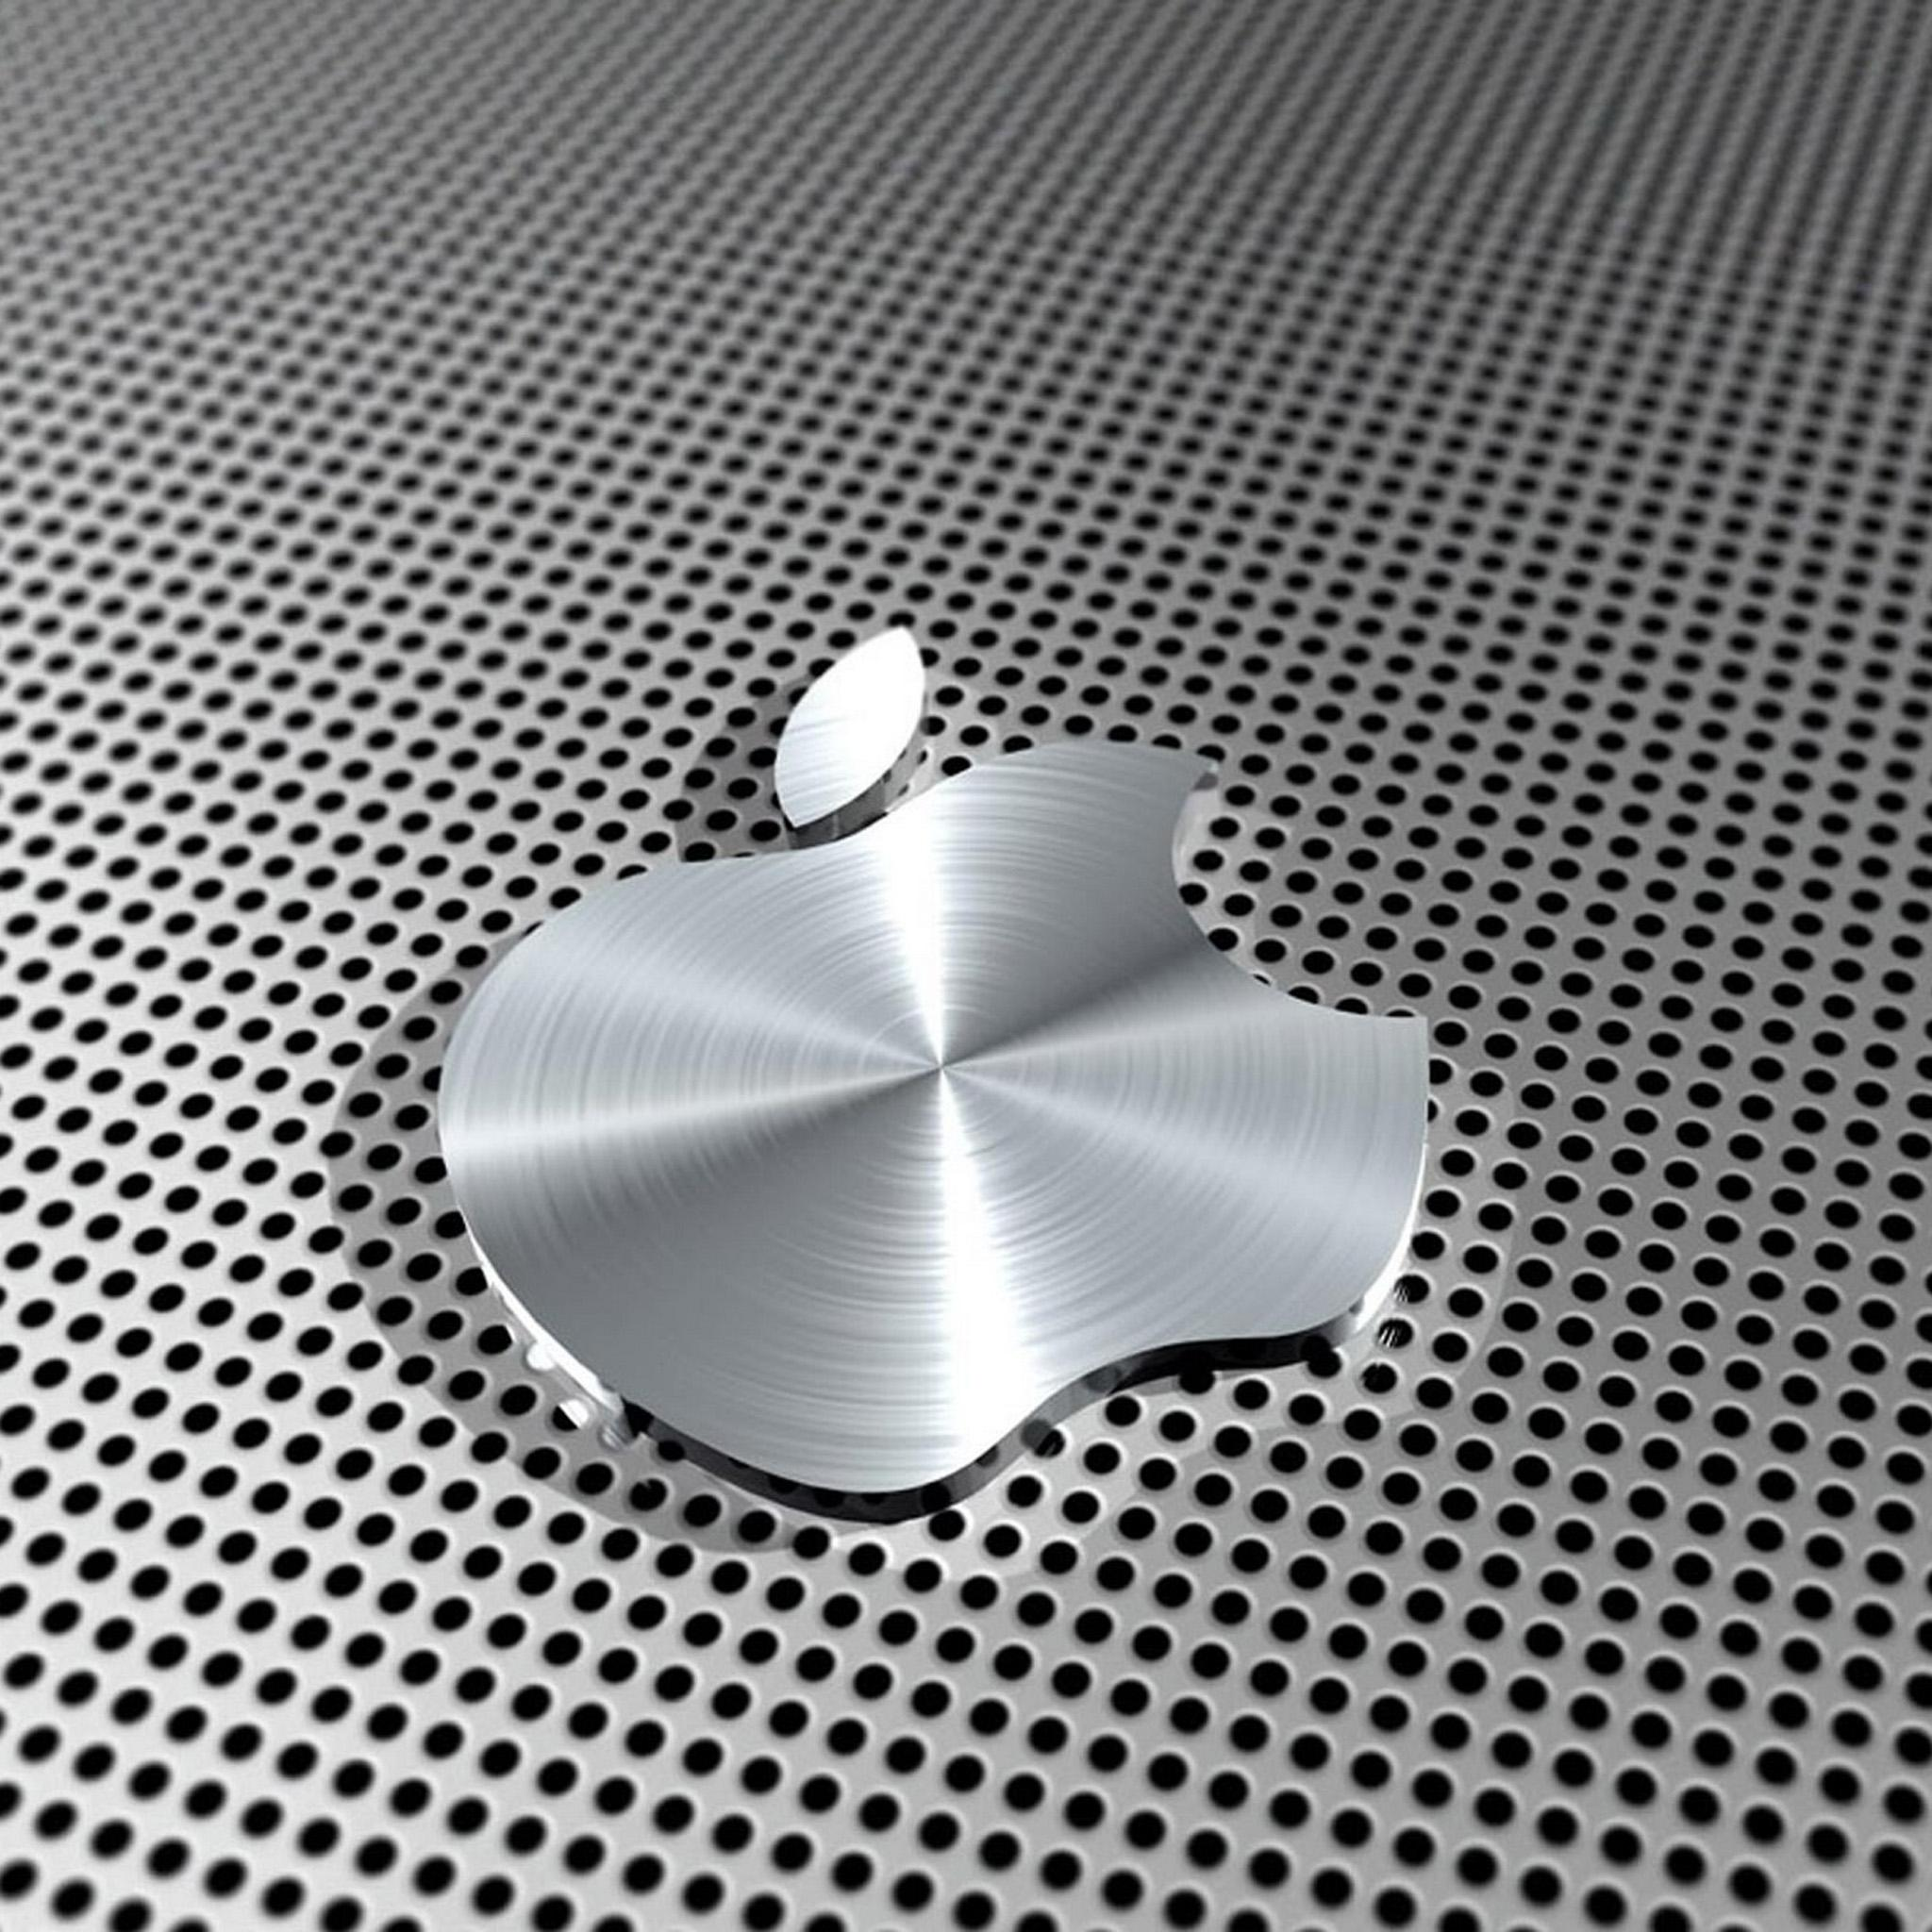 ipad retina hd wallpaper apple logo in steel - ipad, ipad air, ipad